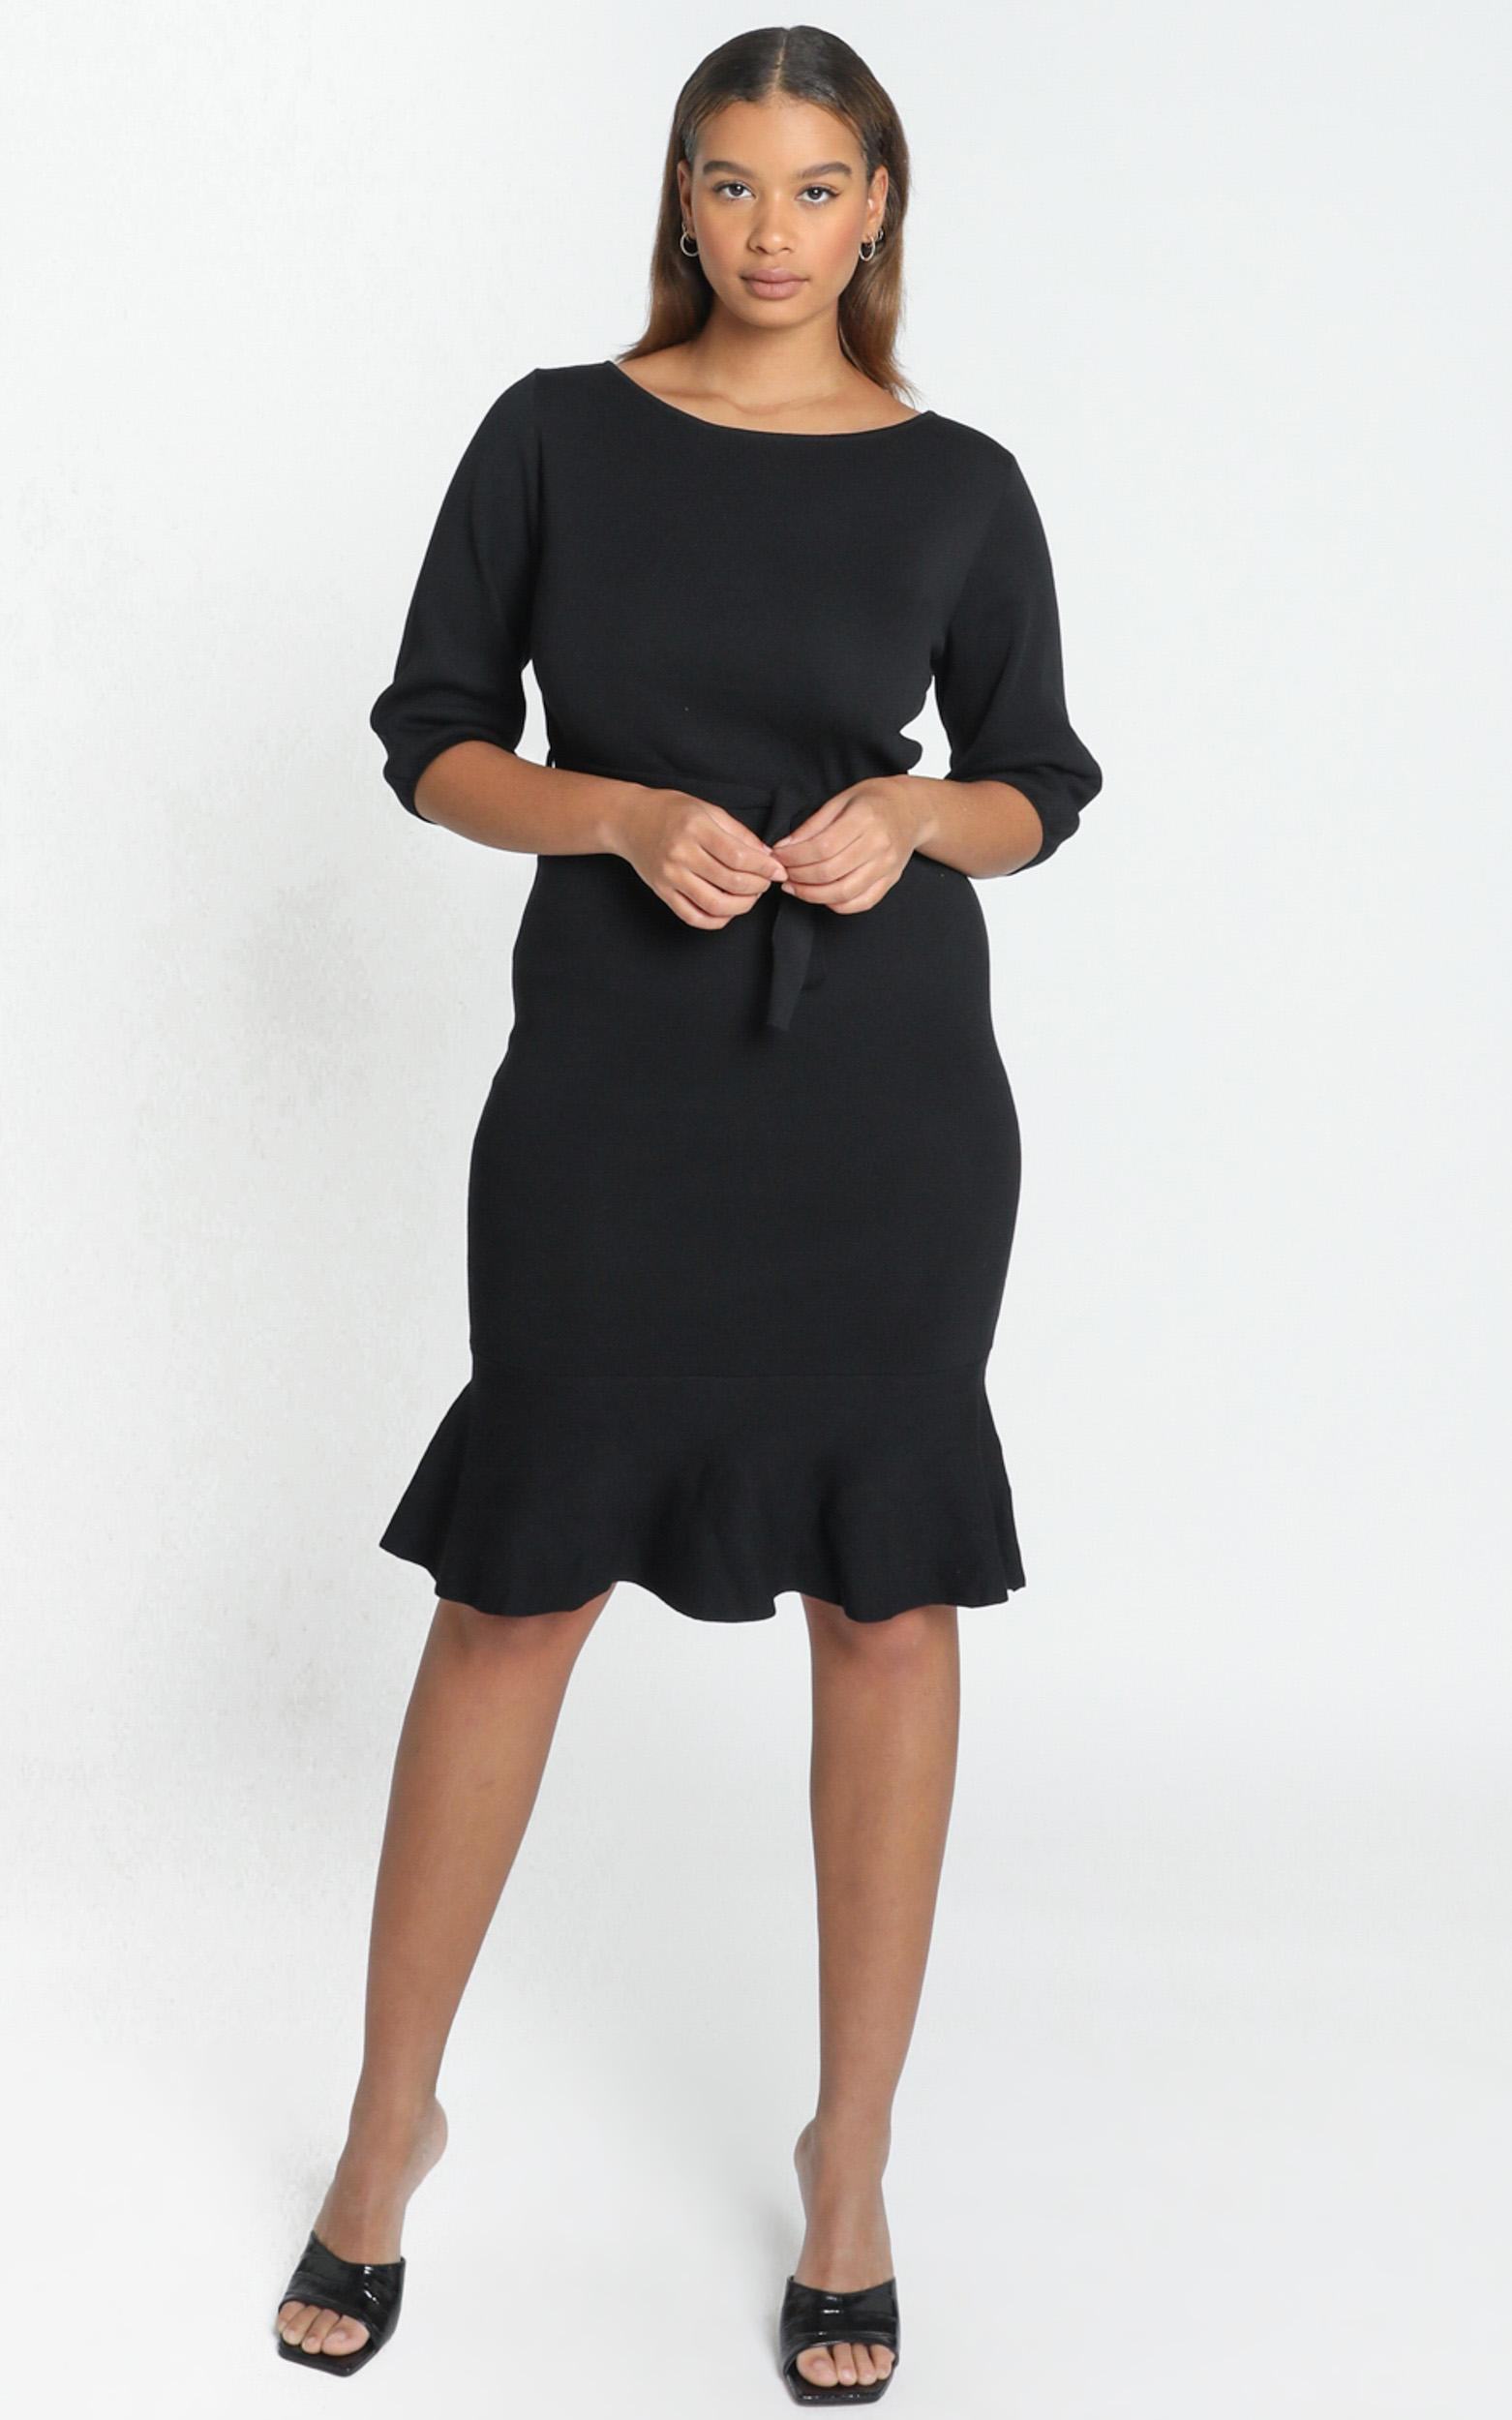 Jenna Knitted Dress in black - 6 (XS), Black, hi-res image number null